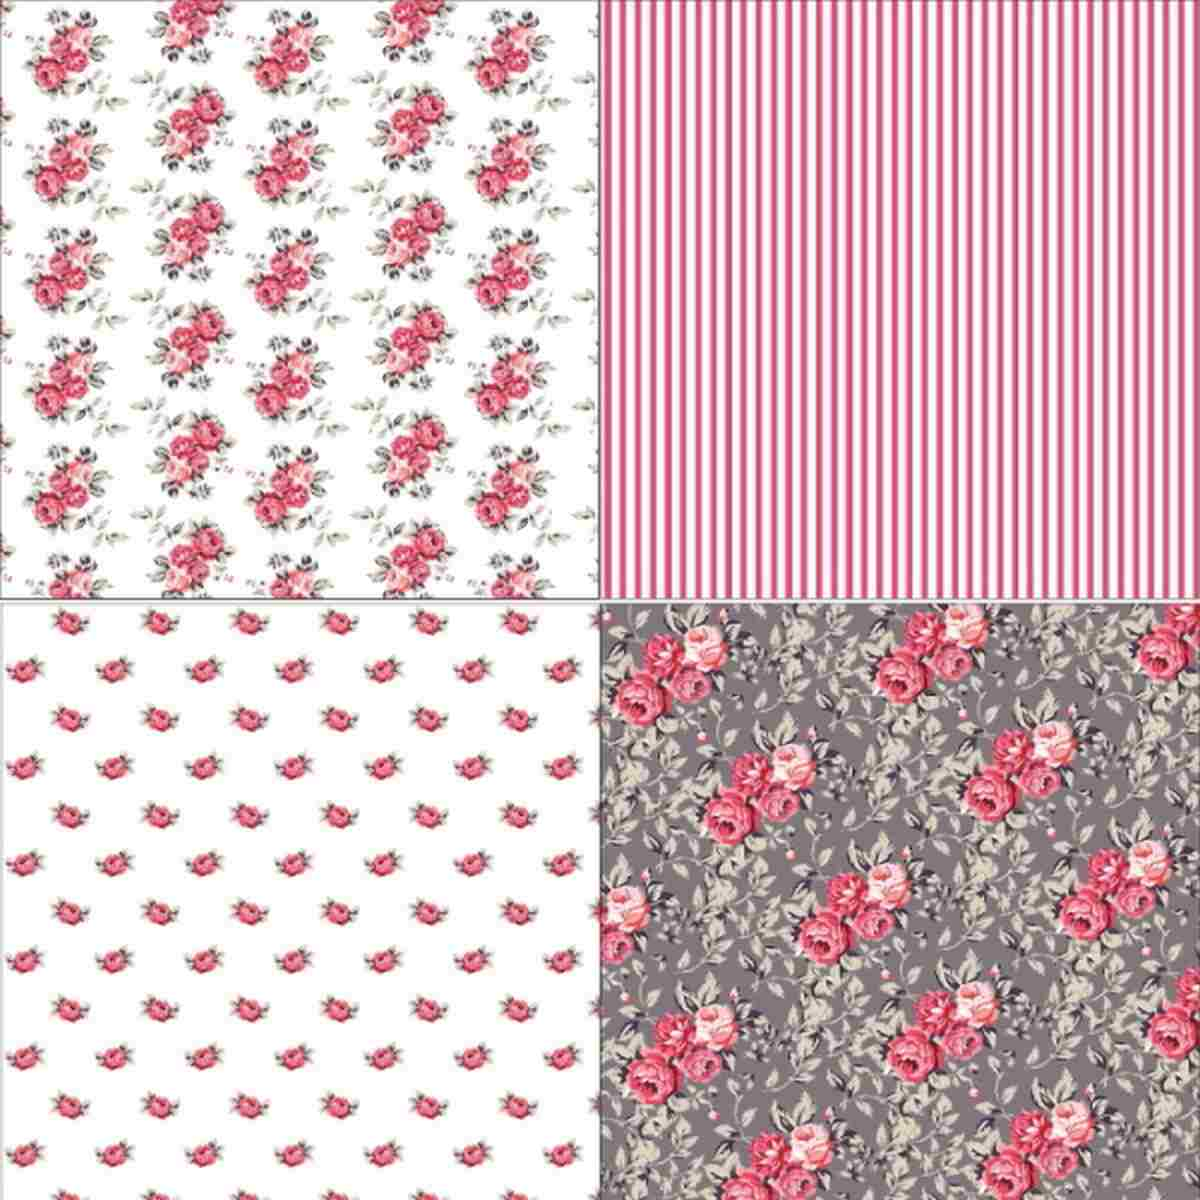 Jags Grey Blooming 6x6 Inch Printed Paper For Crafts Pack Of 36 3 Sheets Each Of 12 Designs